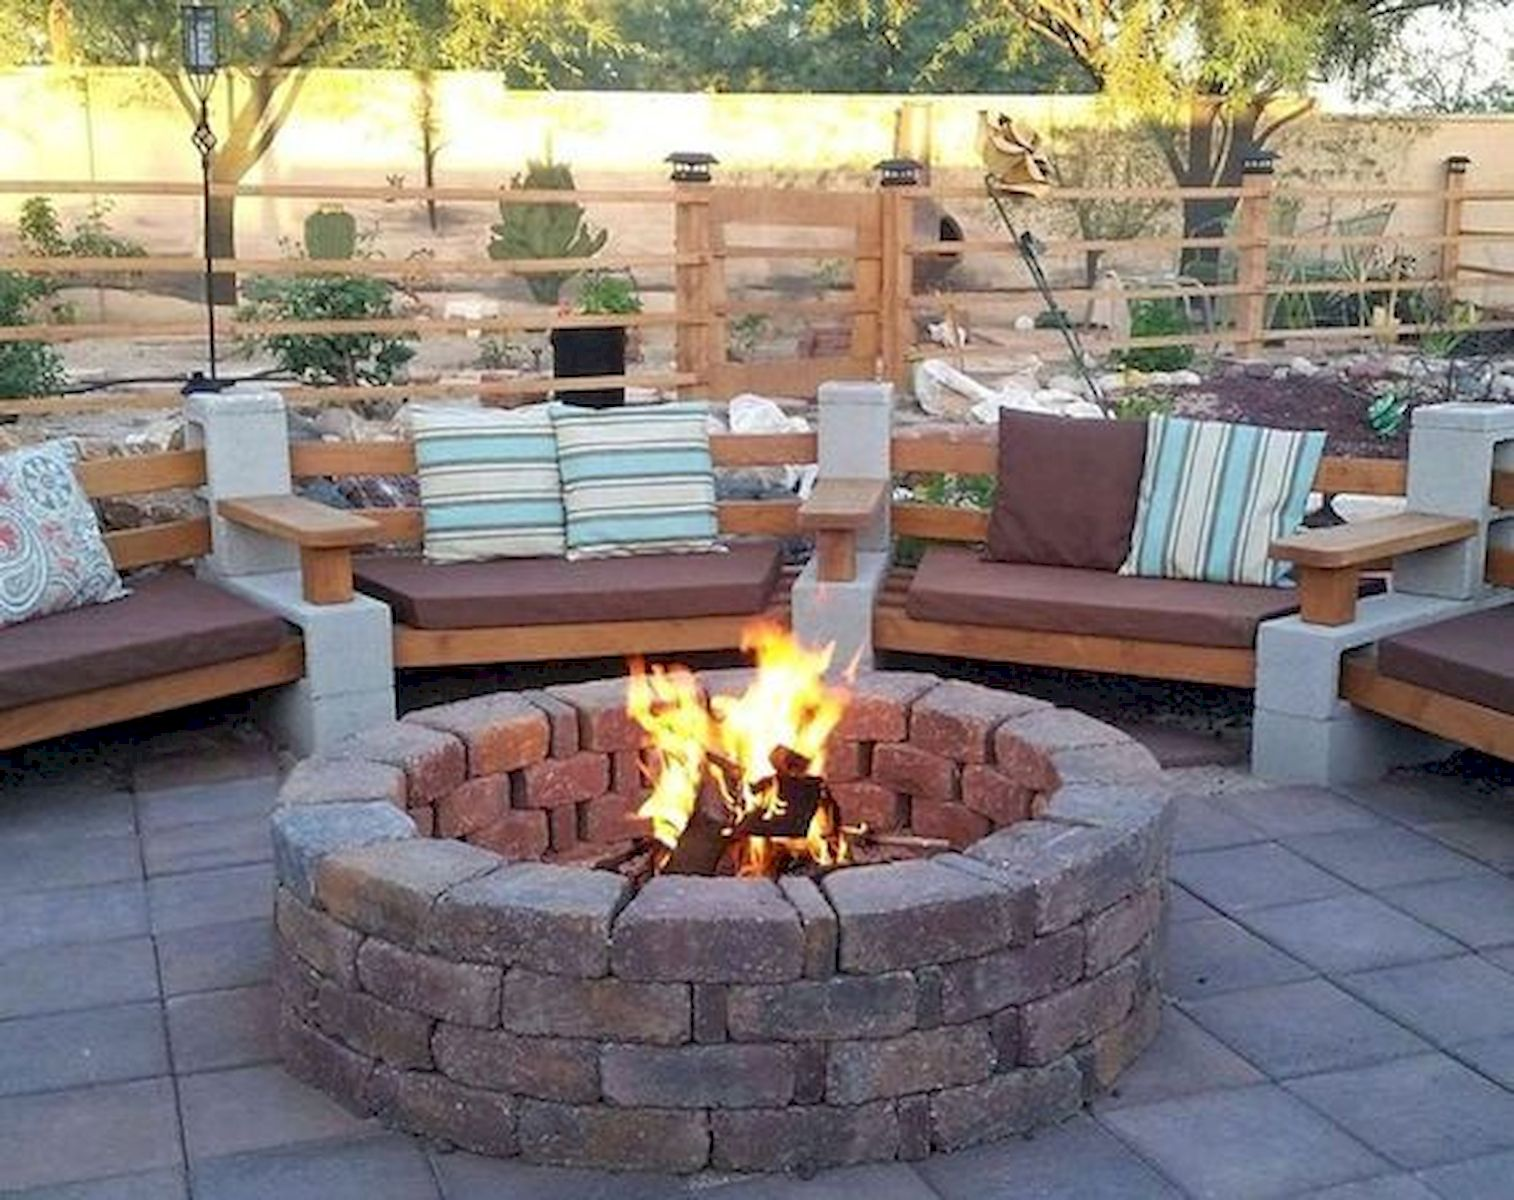 60 Amazing DIY Outdoor and Backyard Fire Pit Ideas On A ... on Backyard Fire Pit Ideas Diy id=56793